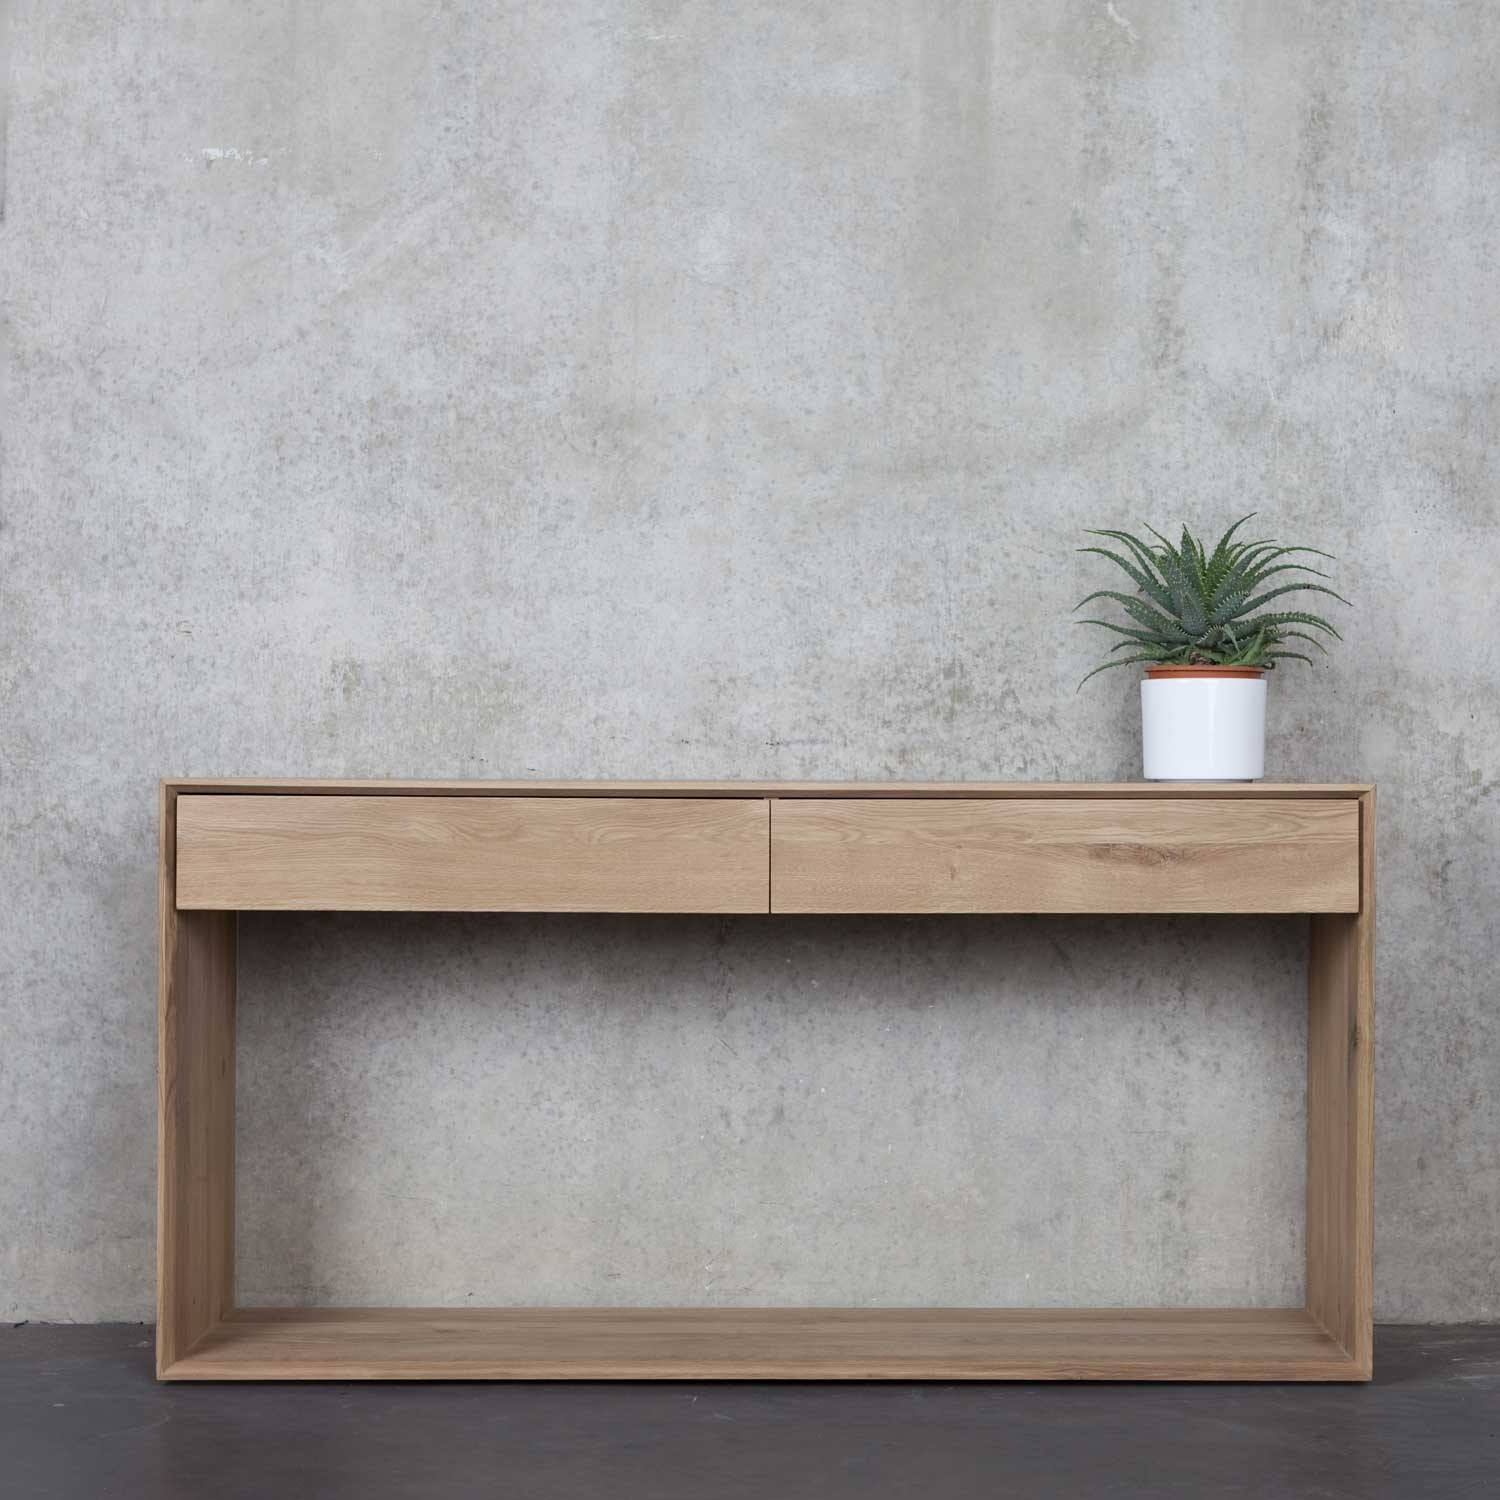 Ethnicraft Oak Nordic Console 2 Drawers